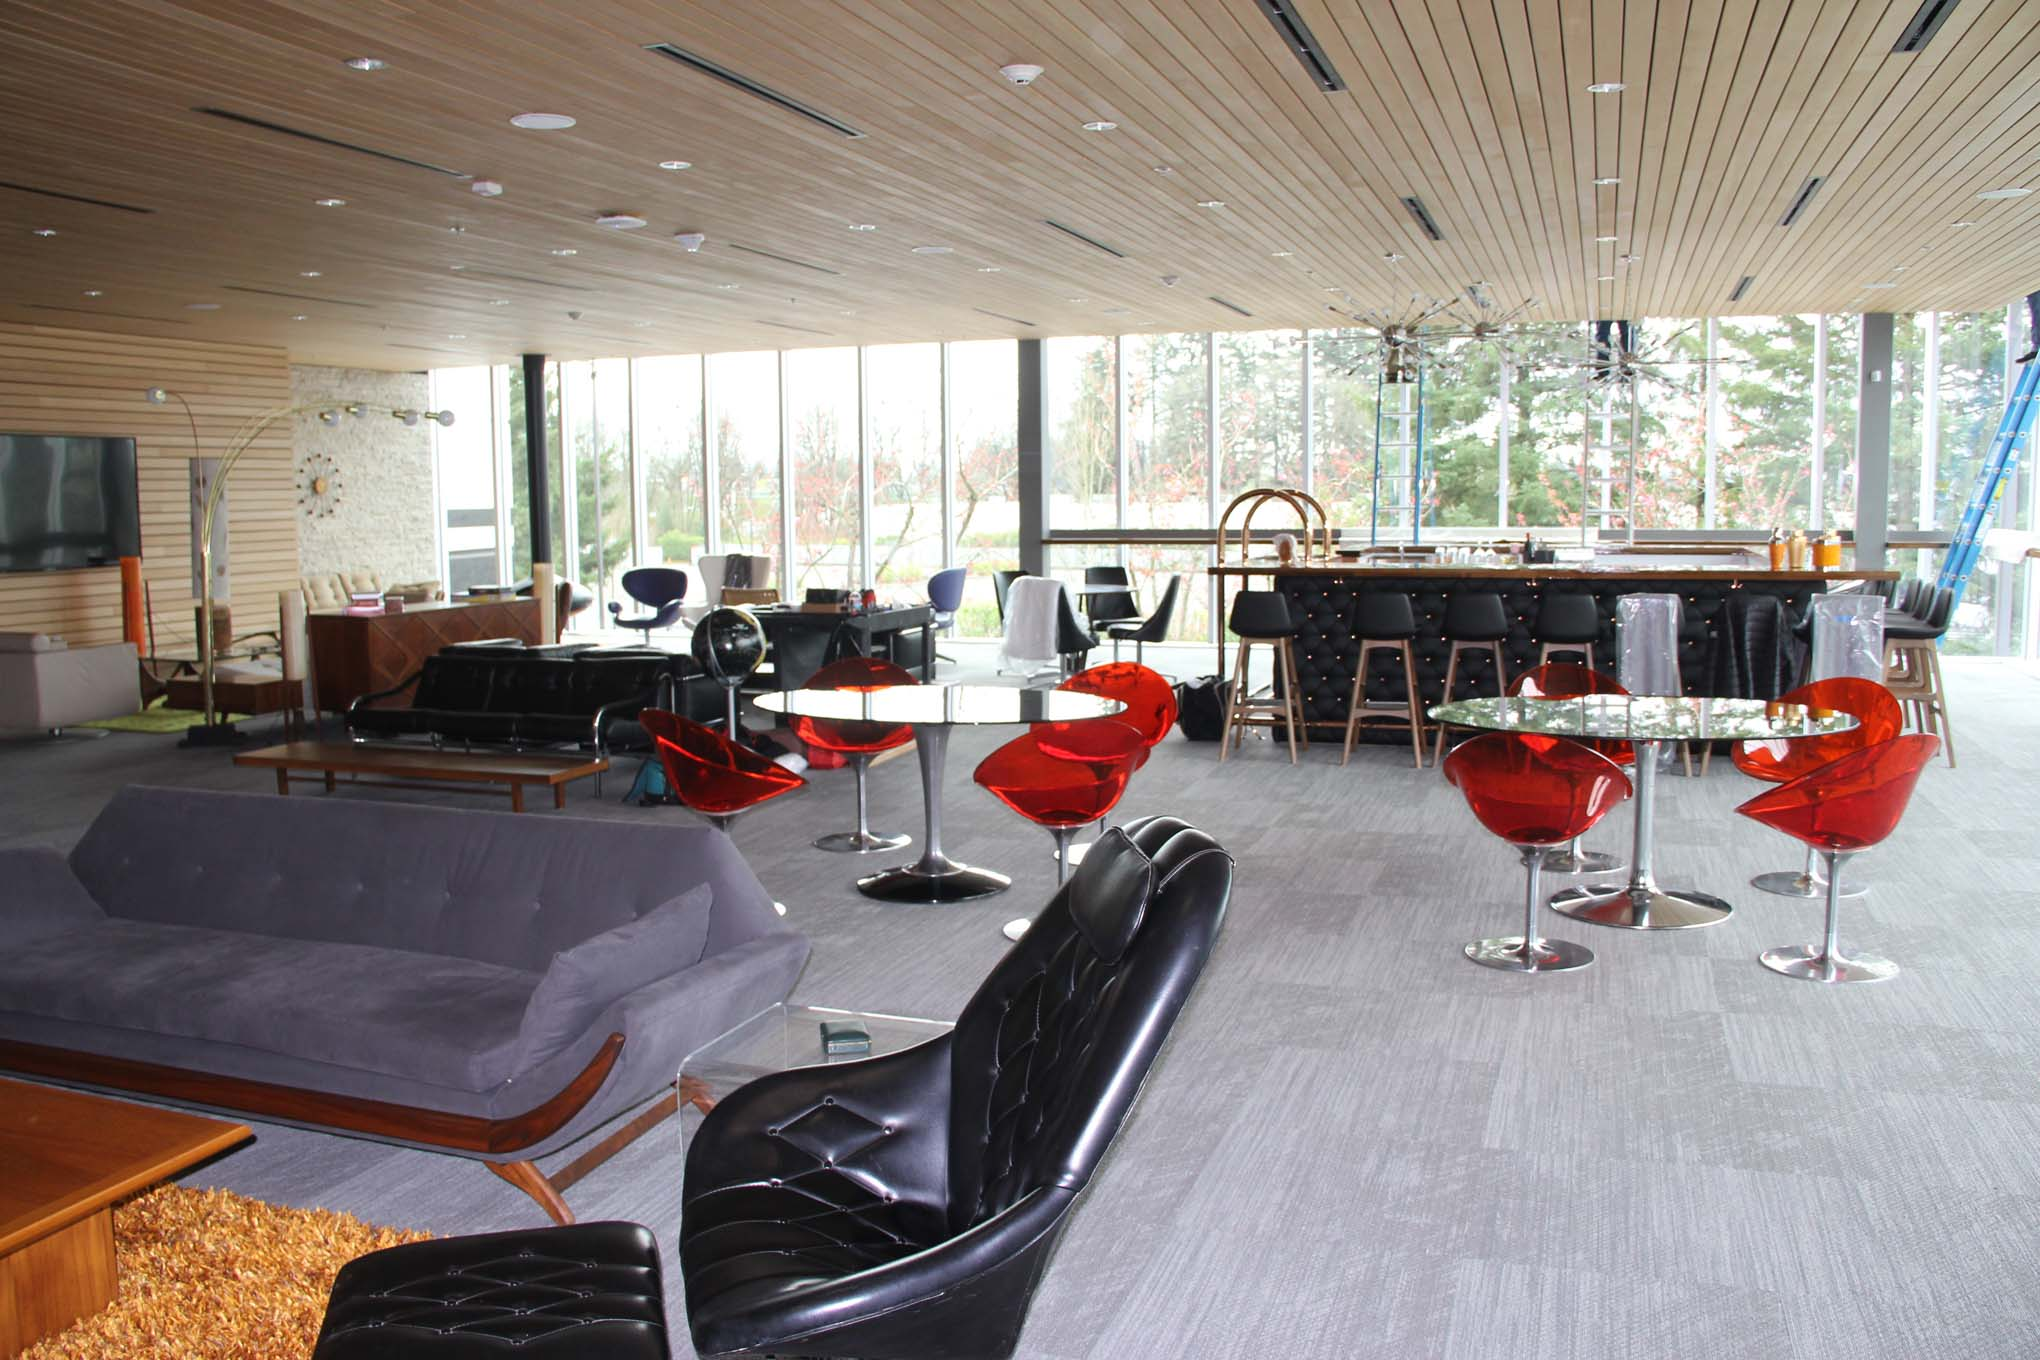 The authentic 1960s lounge is a space for clubs and gatherings that the museum provides to local racers and enthusiasts. Check out the authentic, black, diamond-tufted bar similar to what was seen in smoky hotel lounges in 1960s New York.